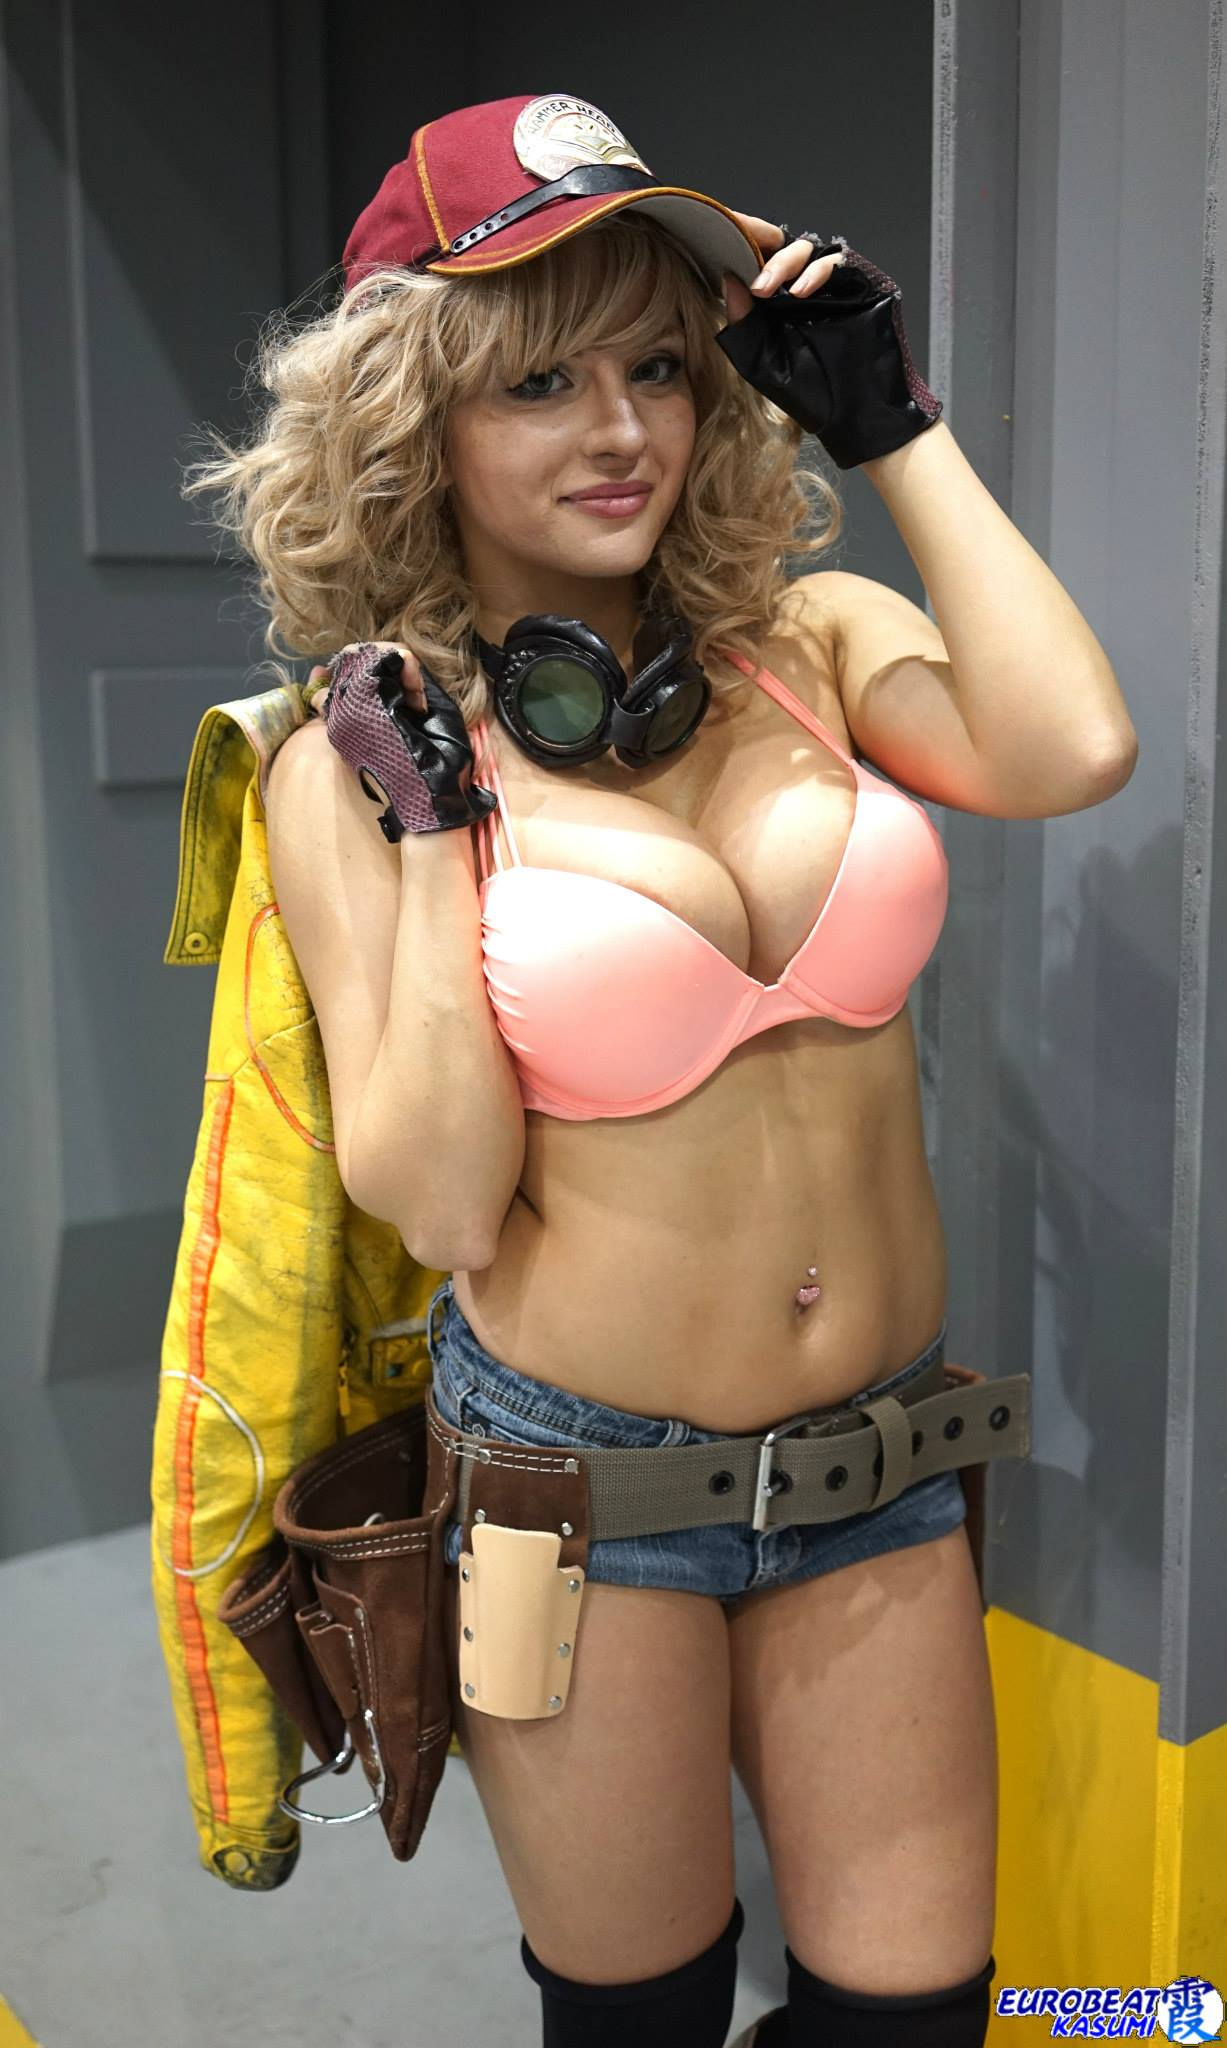 Cindy final fantasy xv hentai